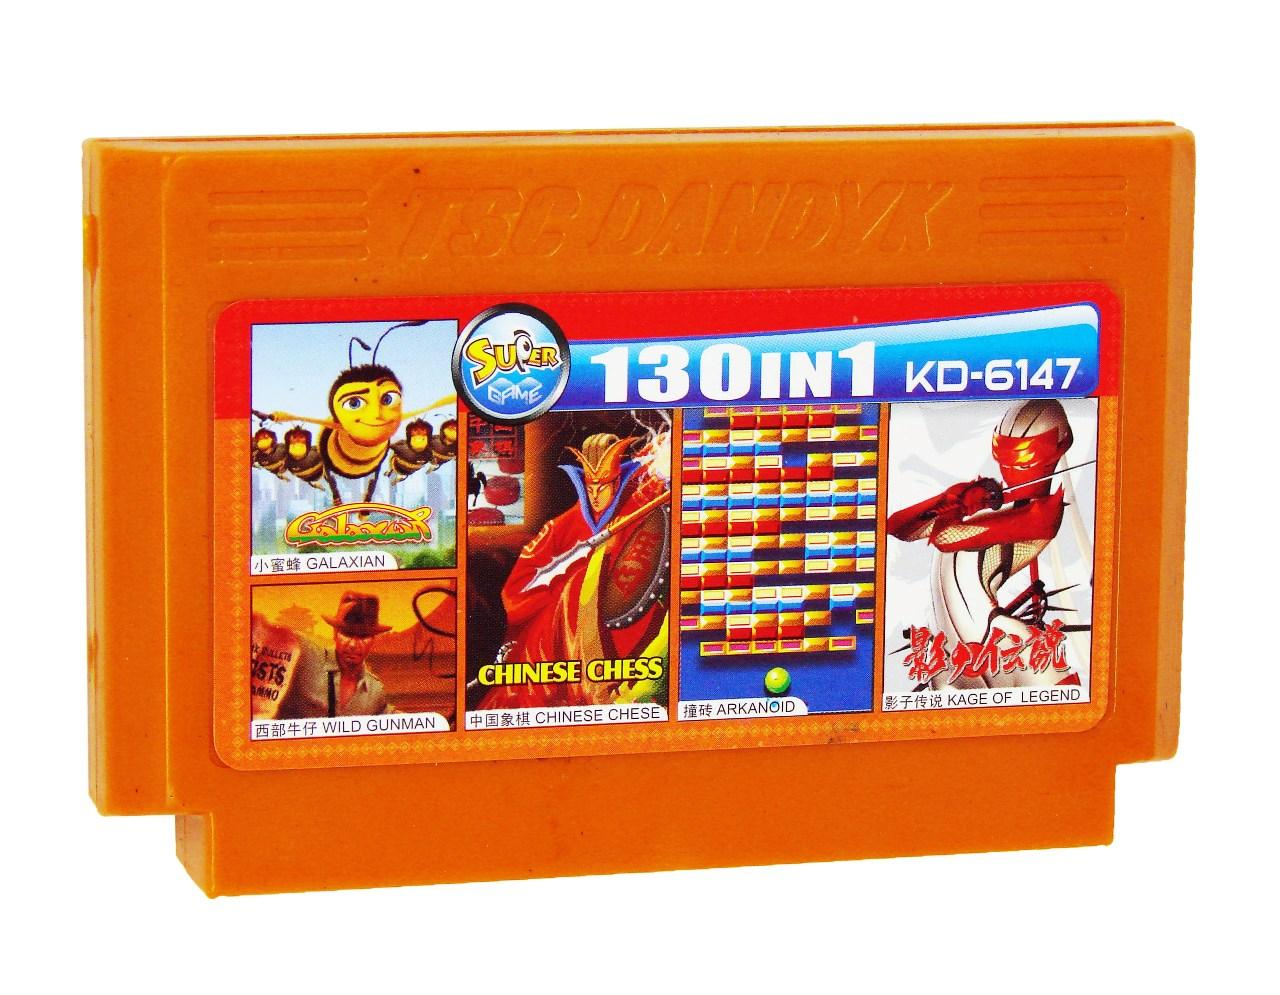 KD 6147 130 in 1 (Dendy), Galaxian, Wild Gunman, Chinese Chess, Arkanoid, Legend of Kage